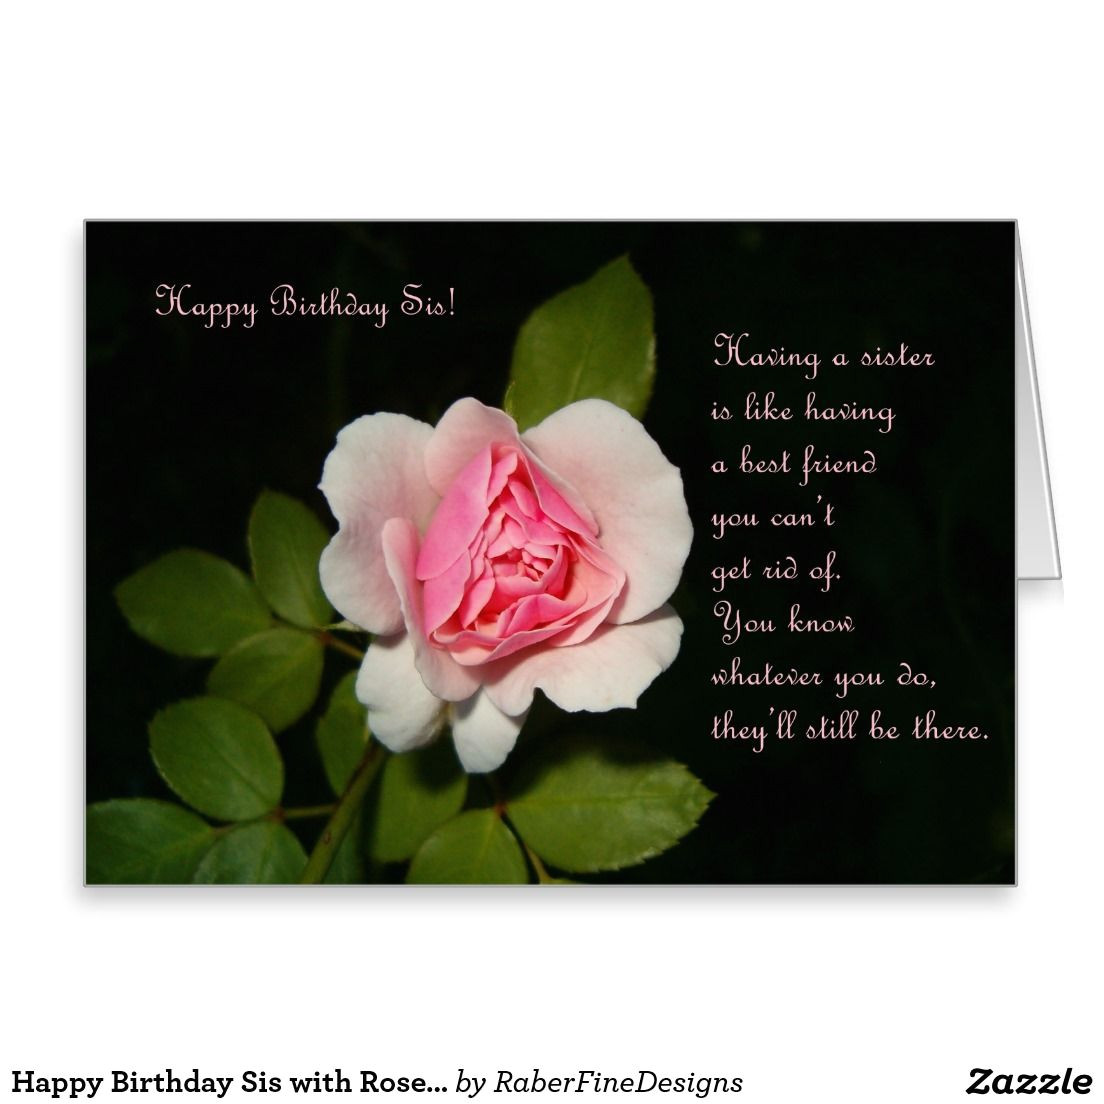 Happy Birthday Card Rose Images Happy Birthday Sis with Rose Card Zazzle Com with Images